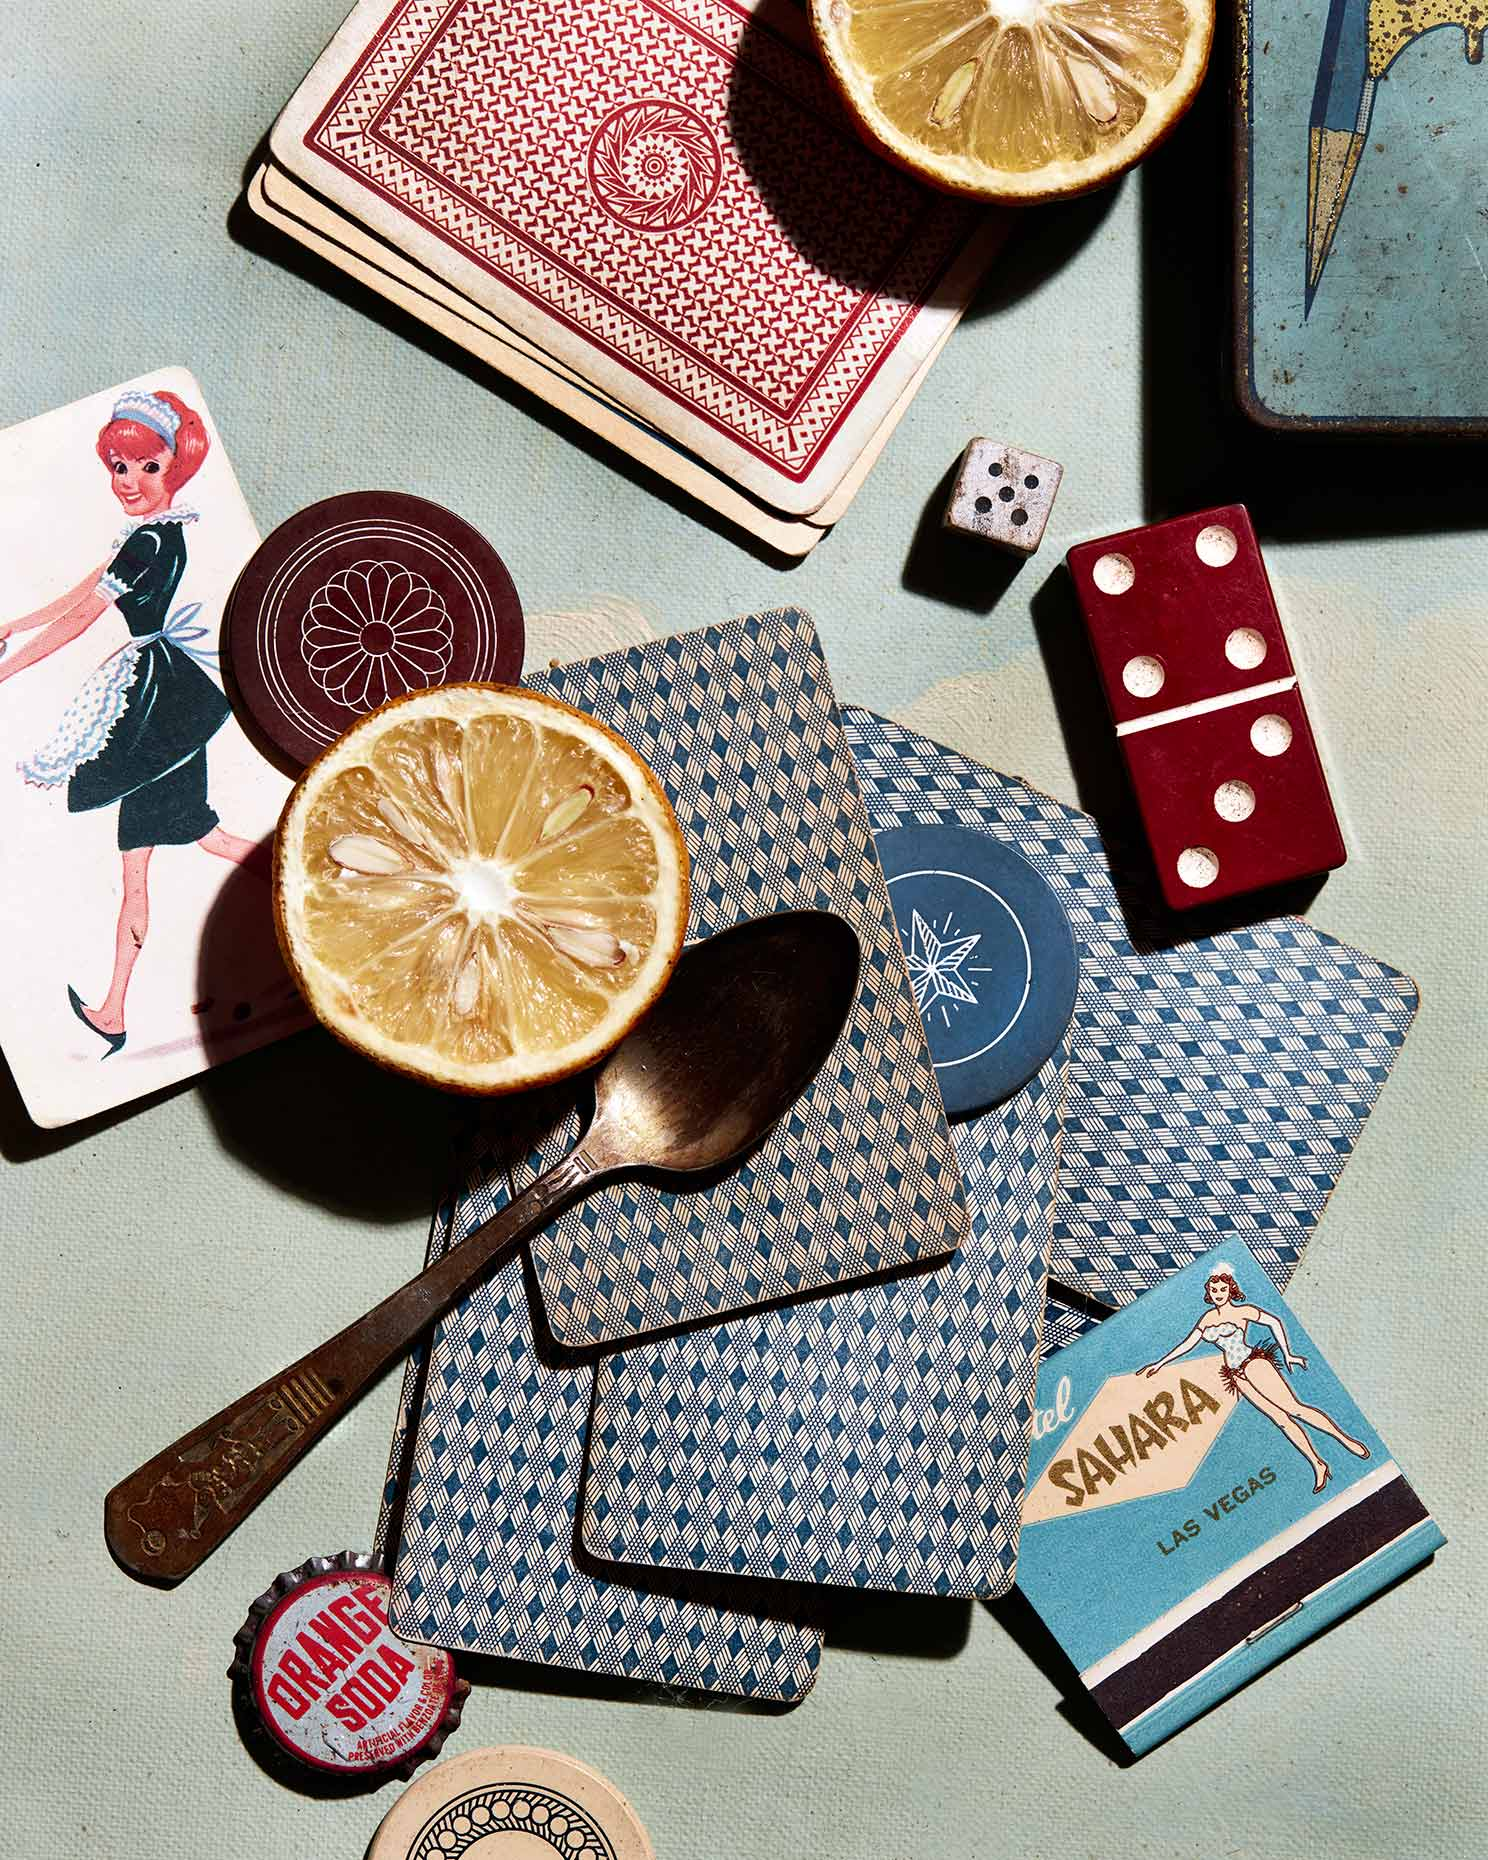 Still life with cards and dice